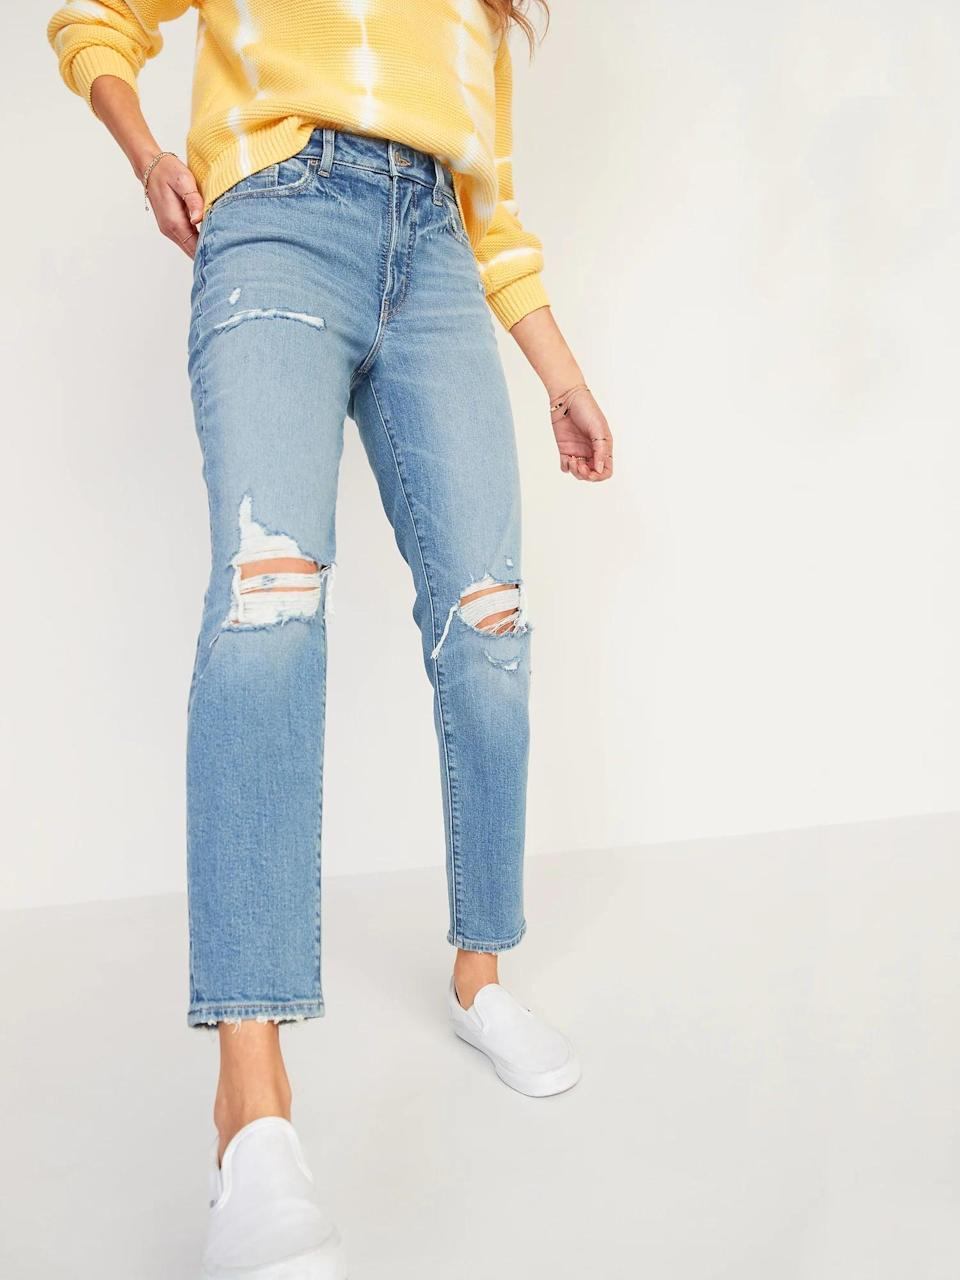 """<p>""""Usually if I spend a day sitting in jeans they end up digging into my skin. After an entire workday sitting at my laptop, these <span>Old Navy High-Waisted O.G. Straight Light-Wash Ripped Jeans</span> ($45, originally $49) not only held up their shape, but there were no marks on my hips from them. Zero."""" - Rebecca Brown, senior contributing editor</p>"""